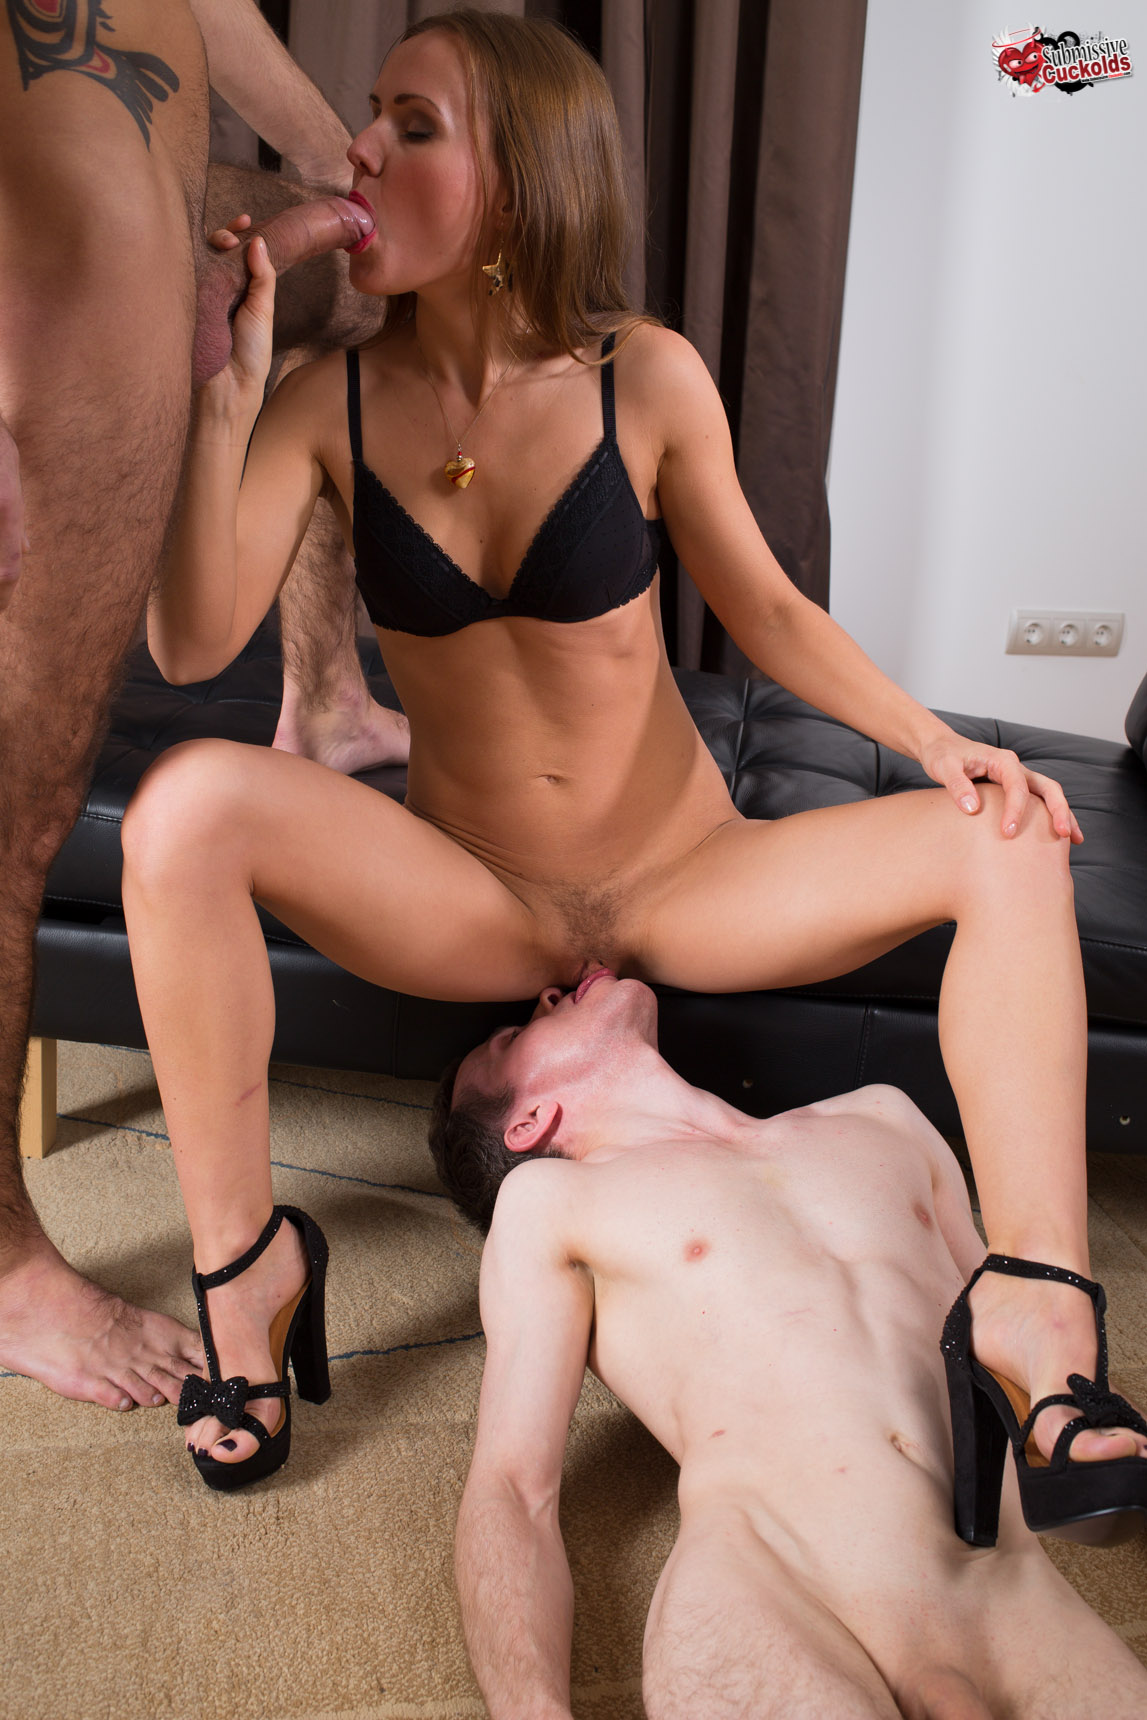 Wife giving her hubby a bj 5